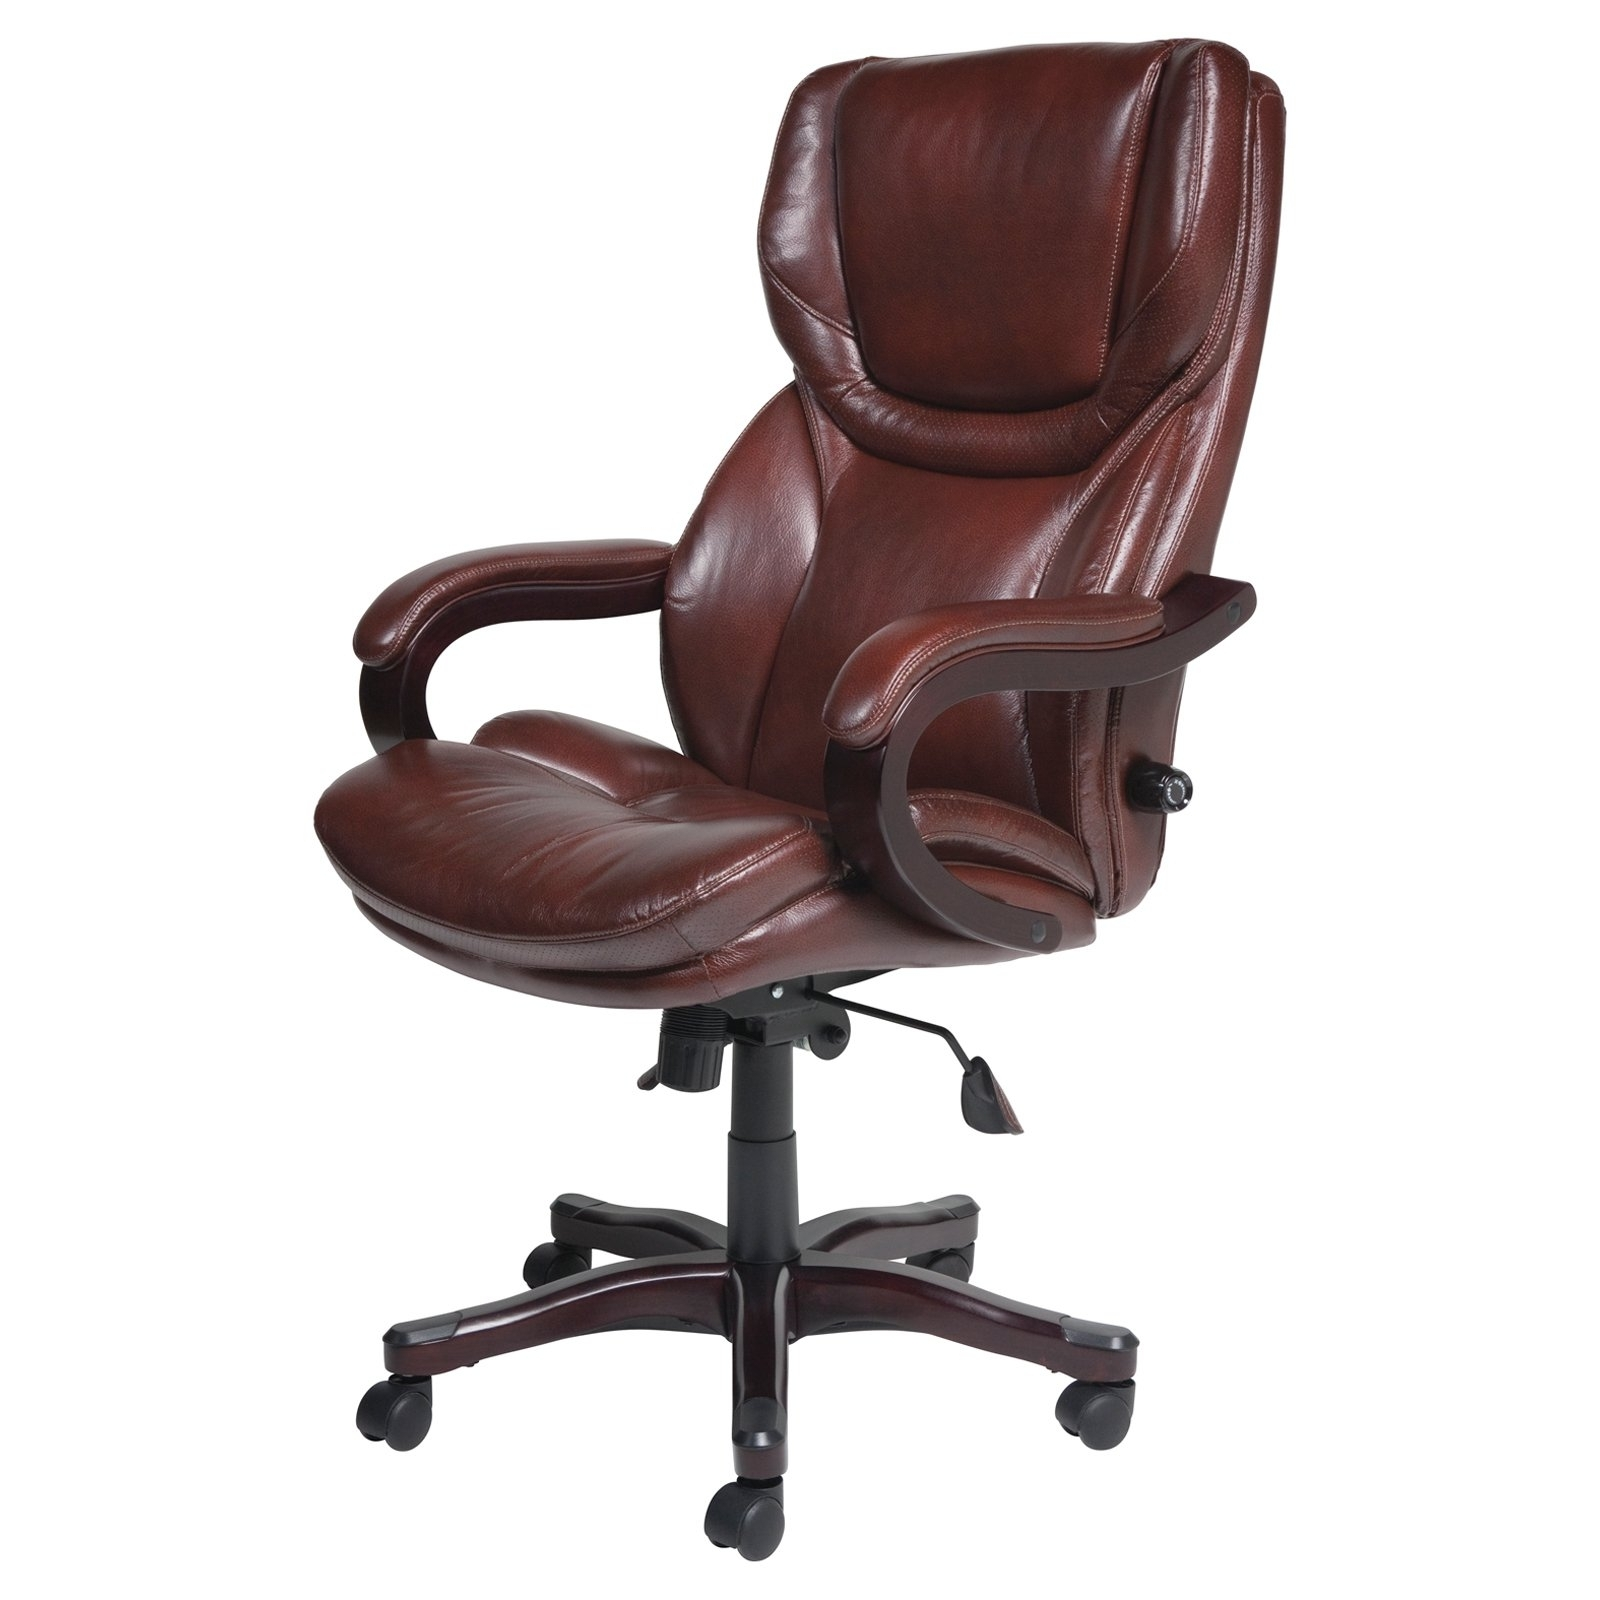 Most Recent Leather Executive Office Chairs For Chair : Ergonomic Black Leather Executive Office Chair Verona (View 6 of 20)